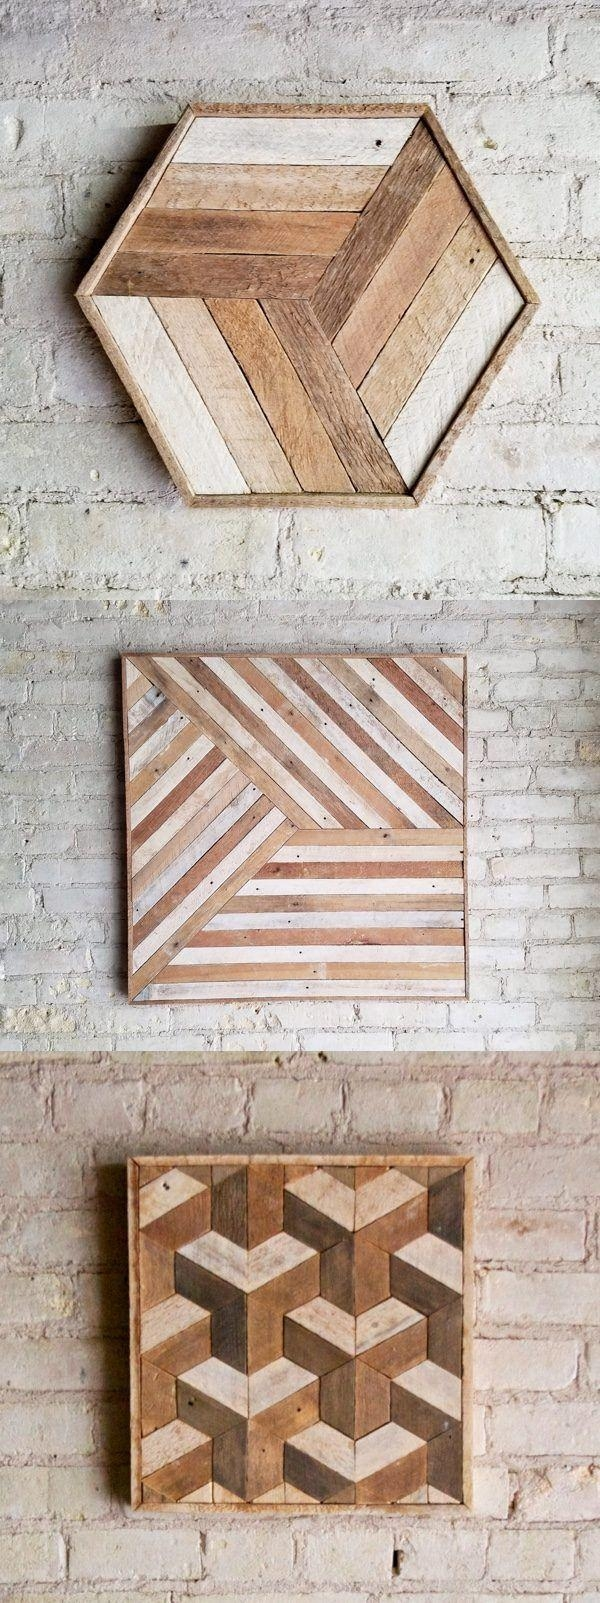 Best 25+ Wood Wall Art Ideas On Pinterest | Wood Art, Wood For Fretwork Wall Art (View 20 of 20)